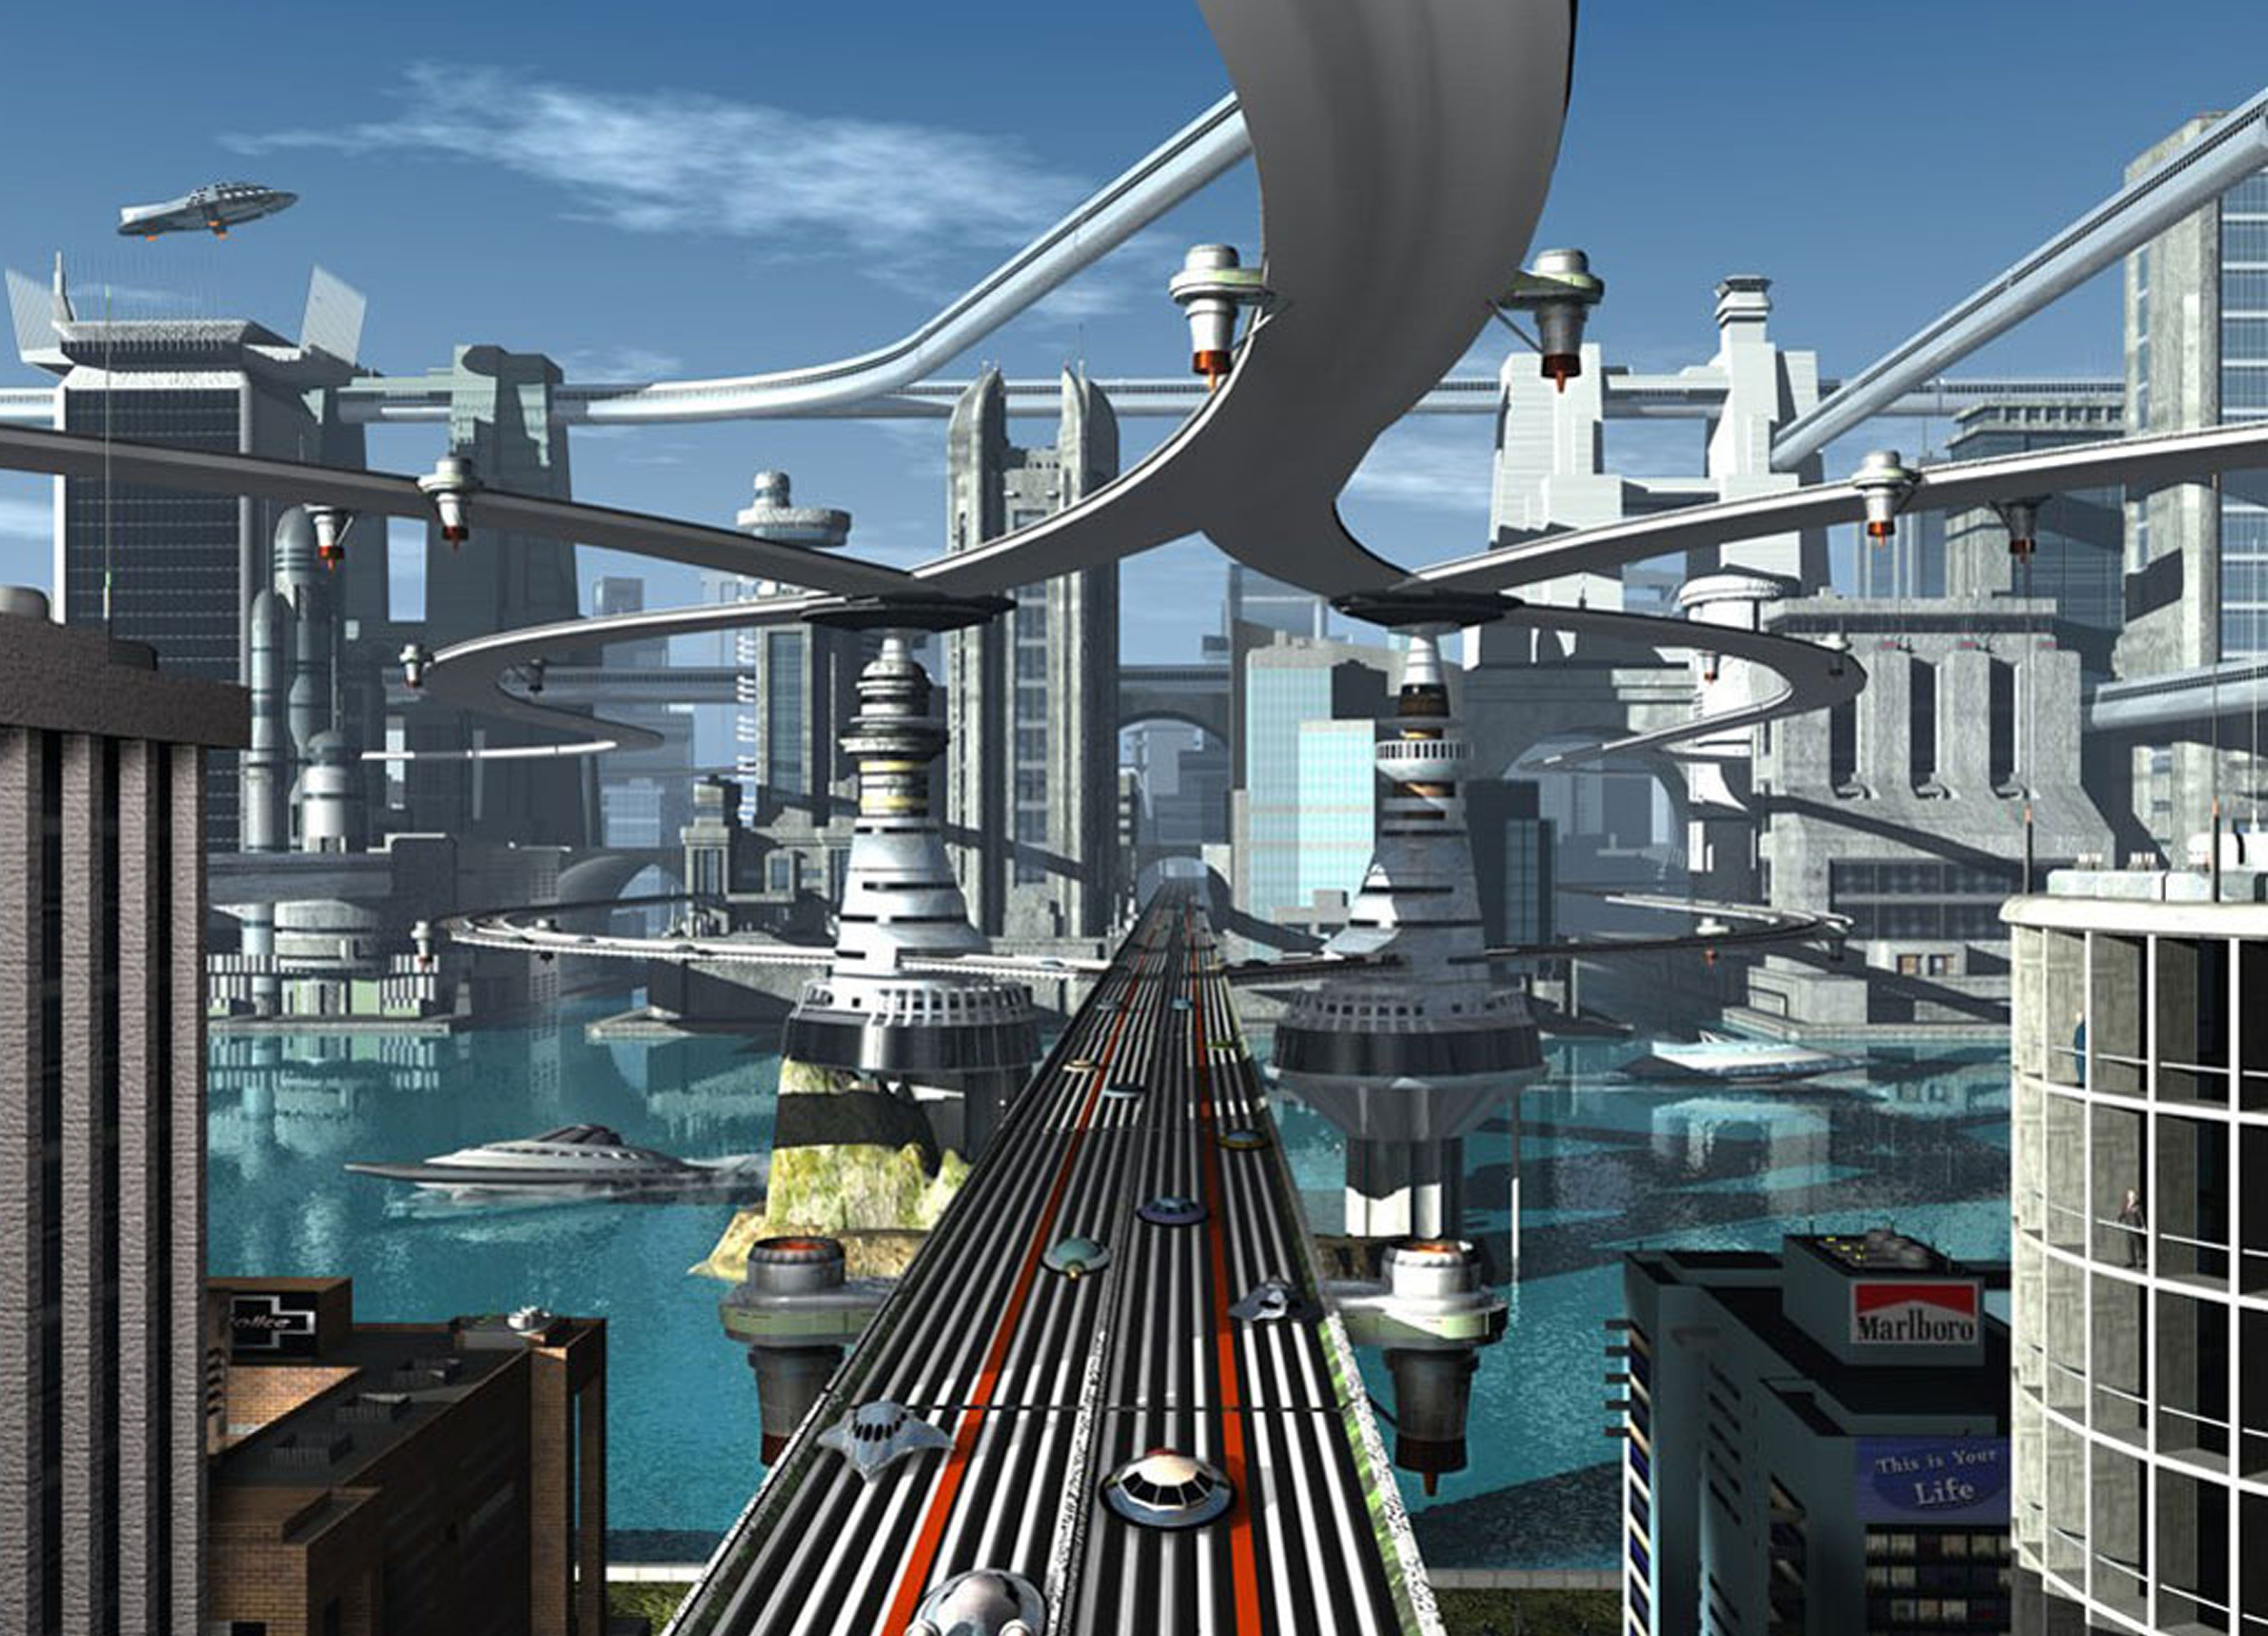 Fast forward transit 2050 for Architecture 2050